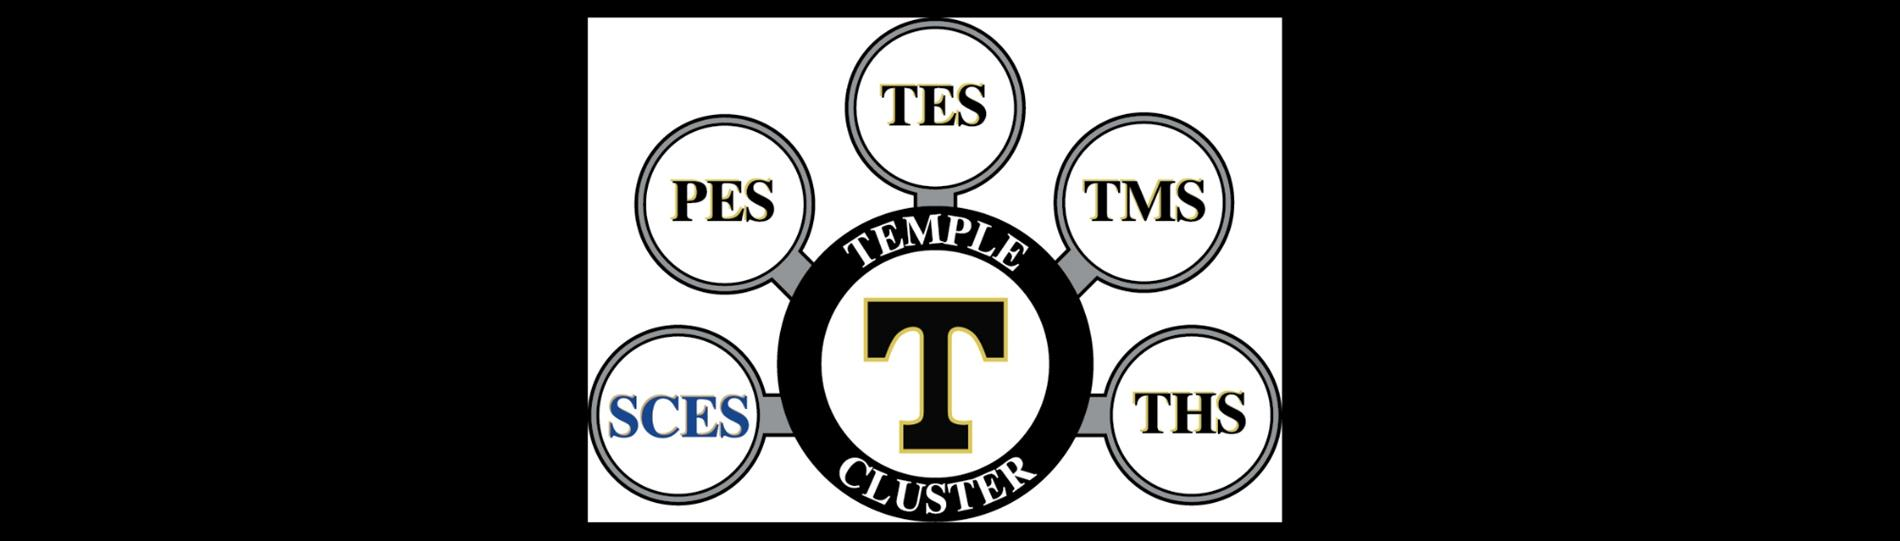 temple cluster